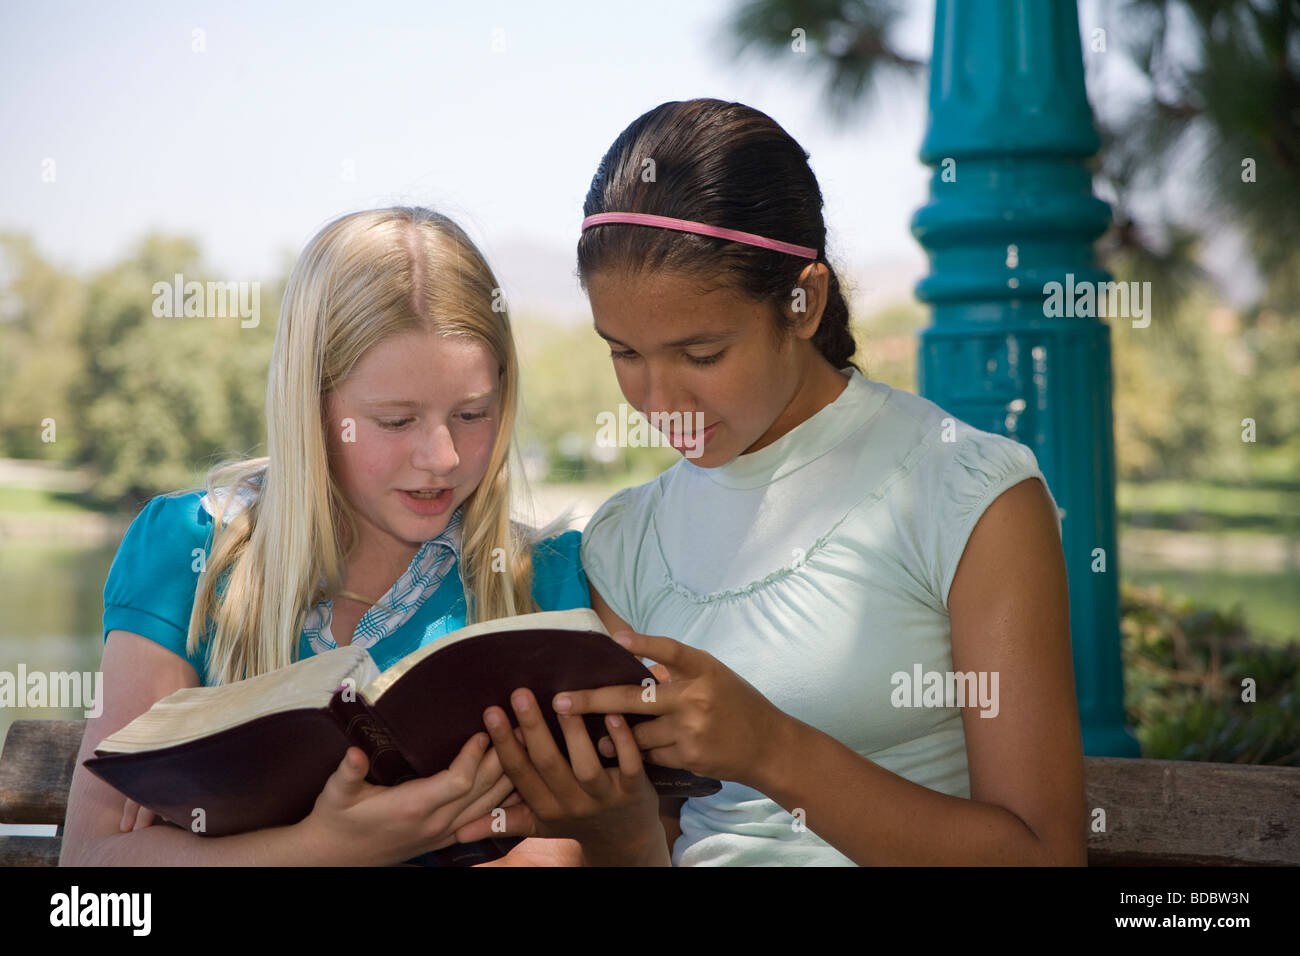 two 2 girls reading Racially mixed Ethnic diversity Hispanic Caucasian discuss Bible nature natural young person Stock Photo